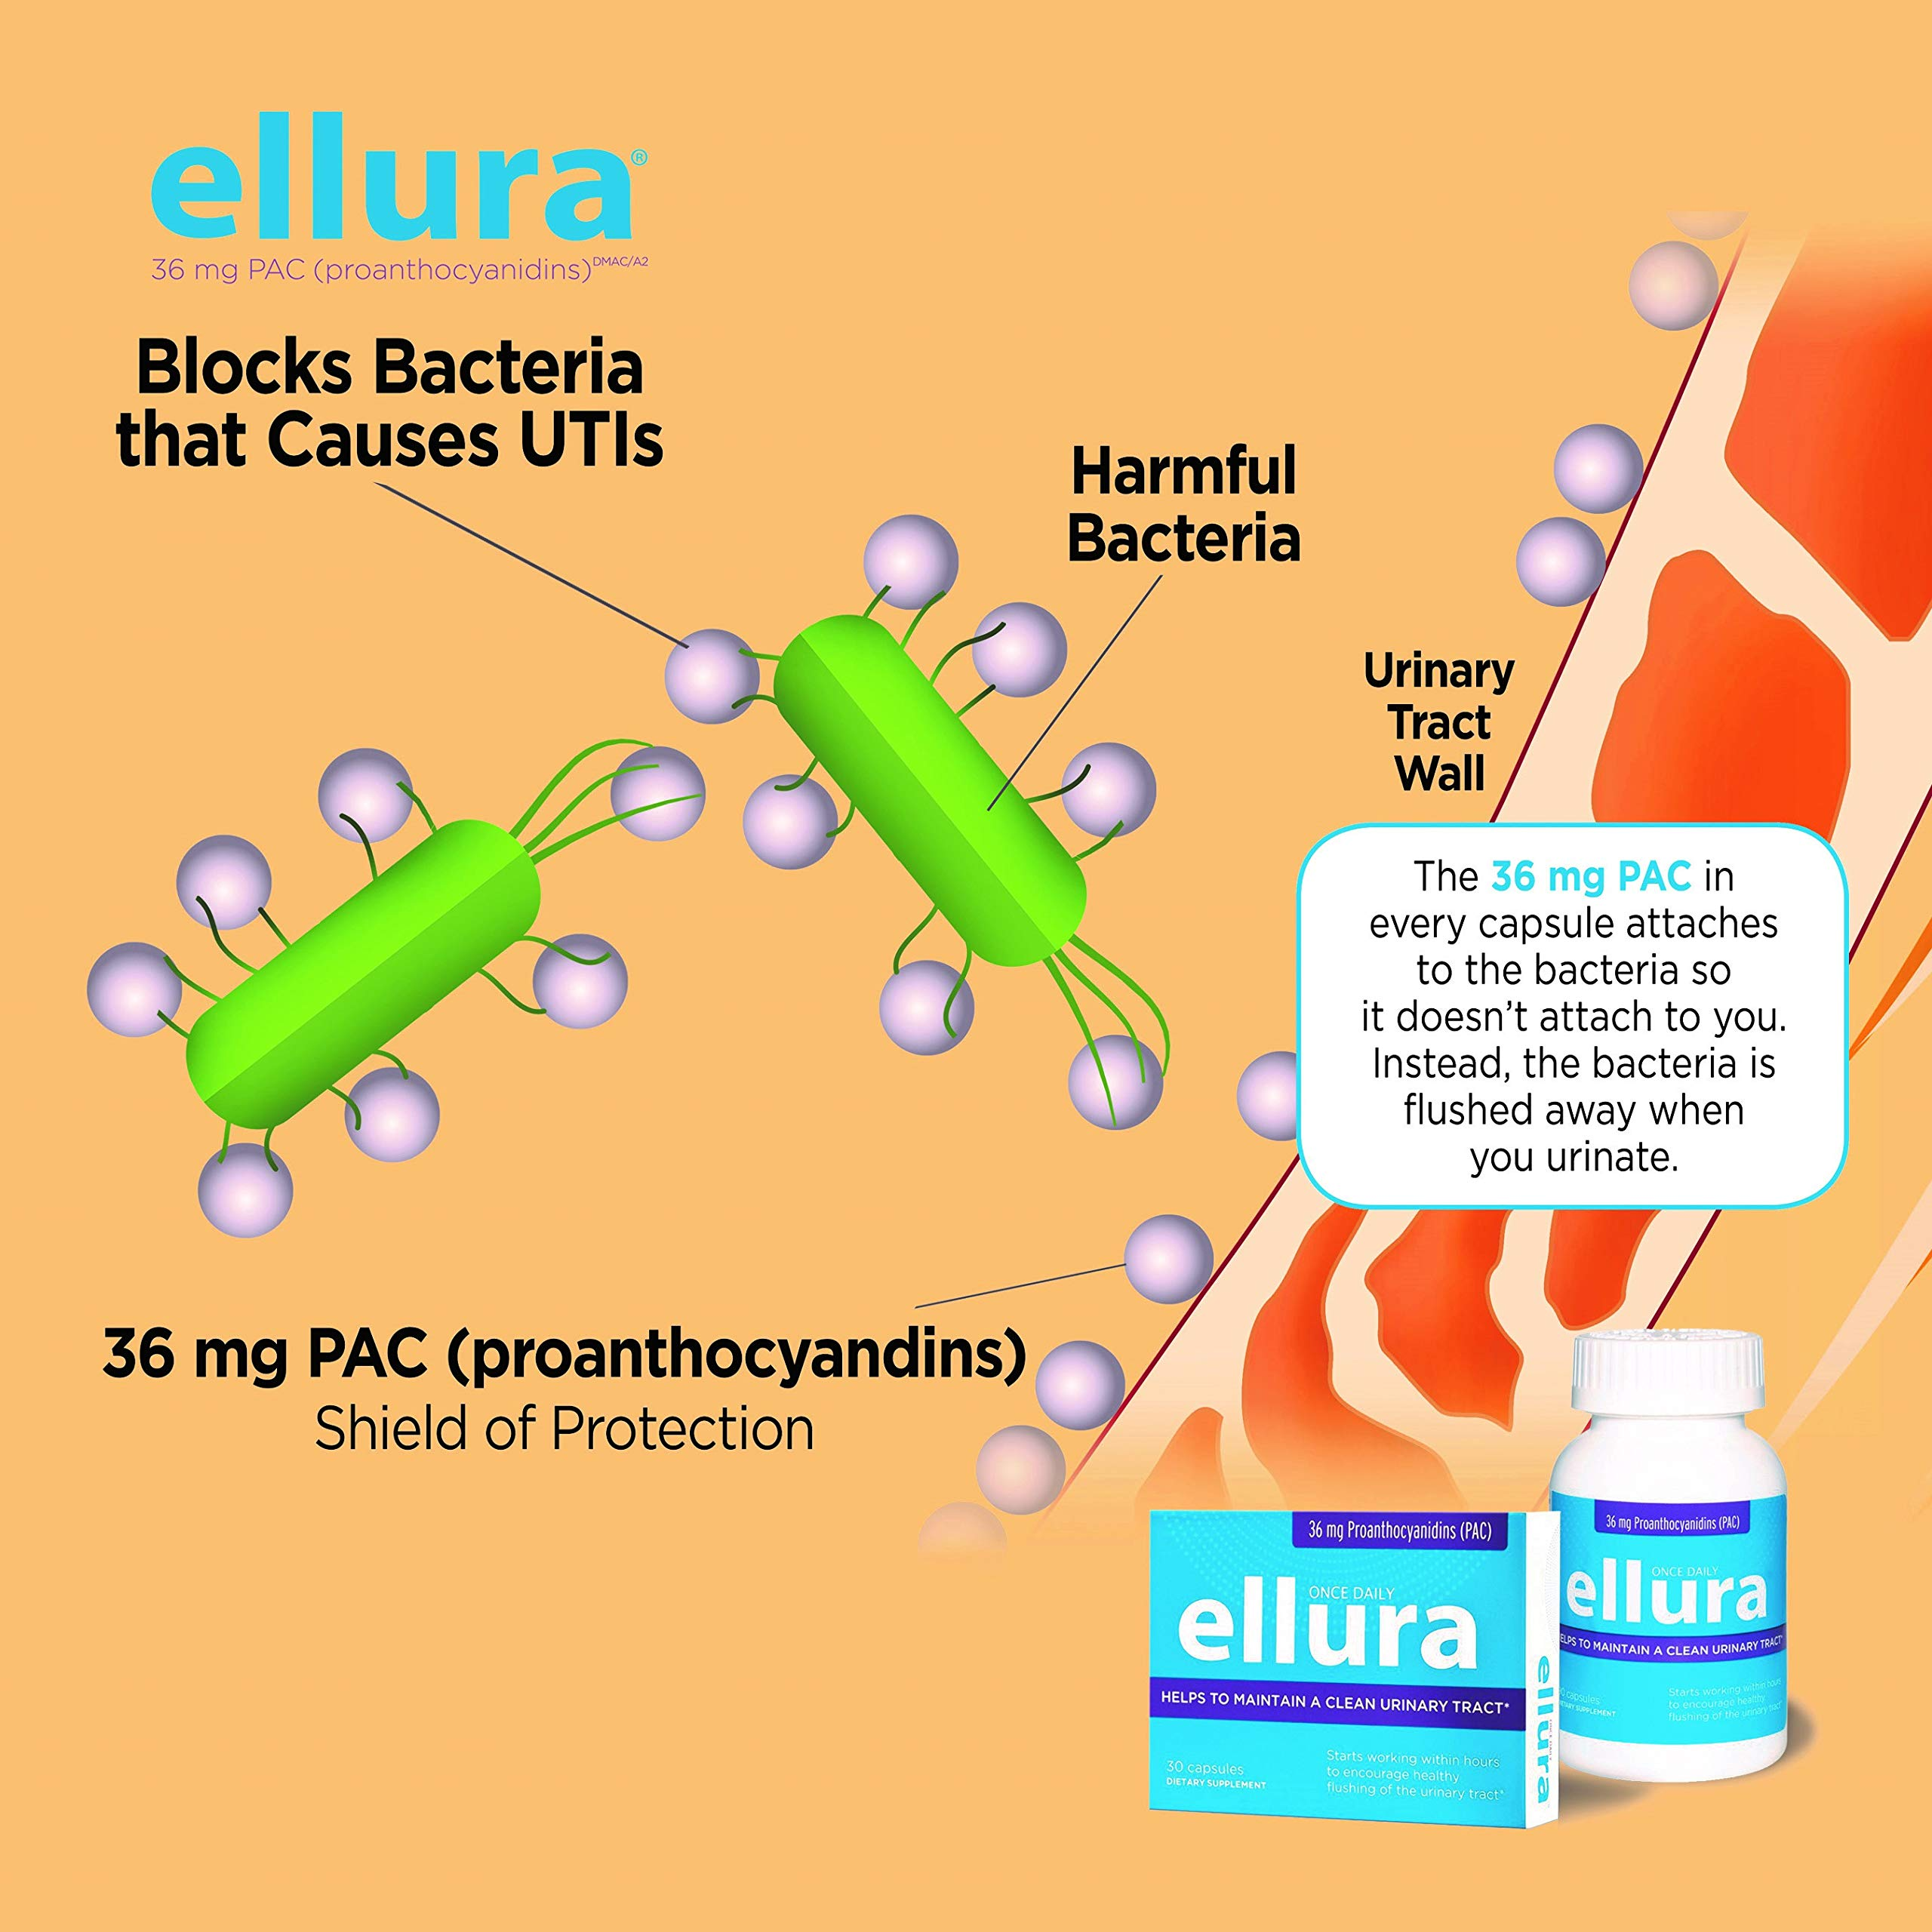 ellura 36 mg PAC DMAC/A2 (90 Caps Bottle), Natural, Medical-Grade Cranberry Supplement to Prevent UTIs (Urinary Tract infections). Trōphikōs, LLC, Maker of ellura. by ellura (Image #4)